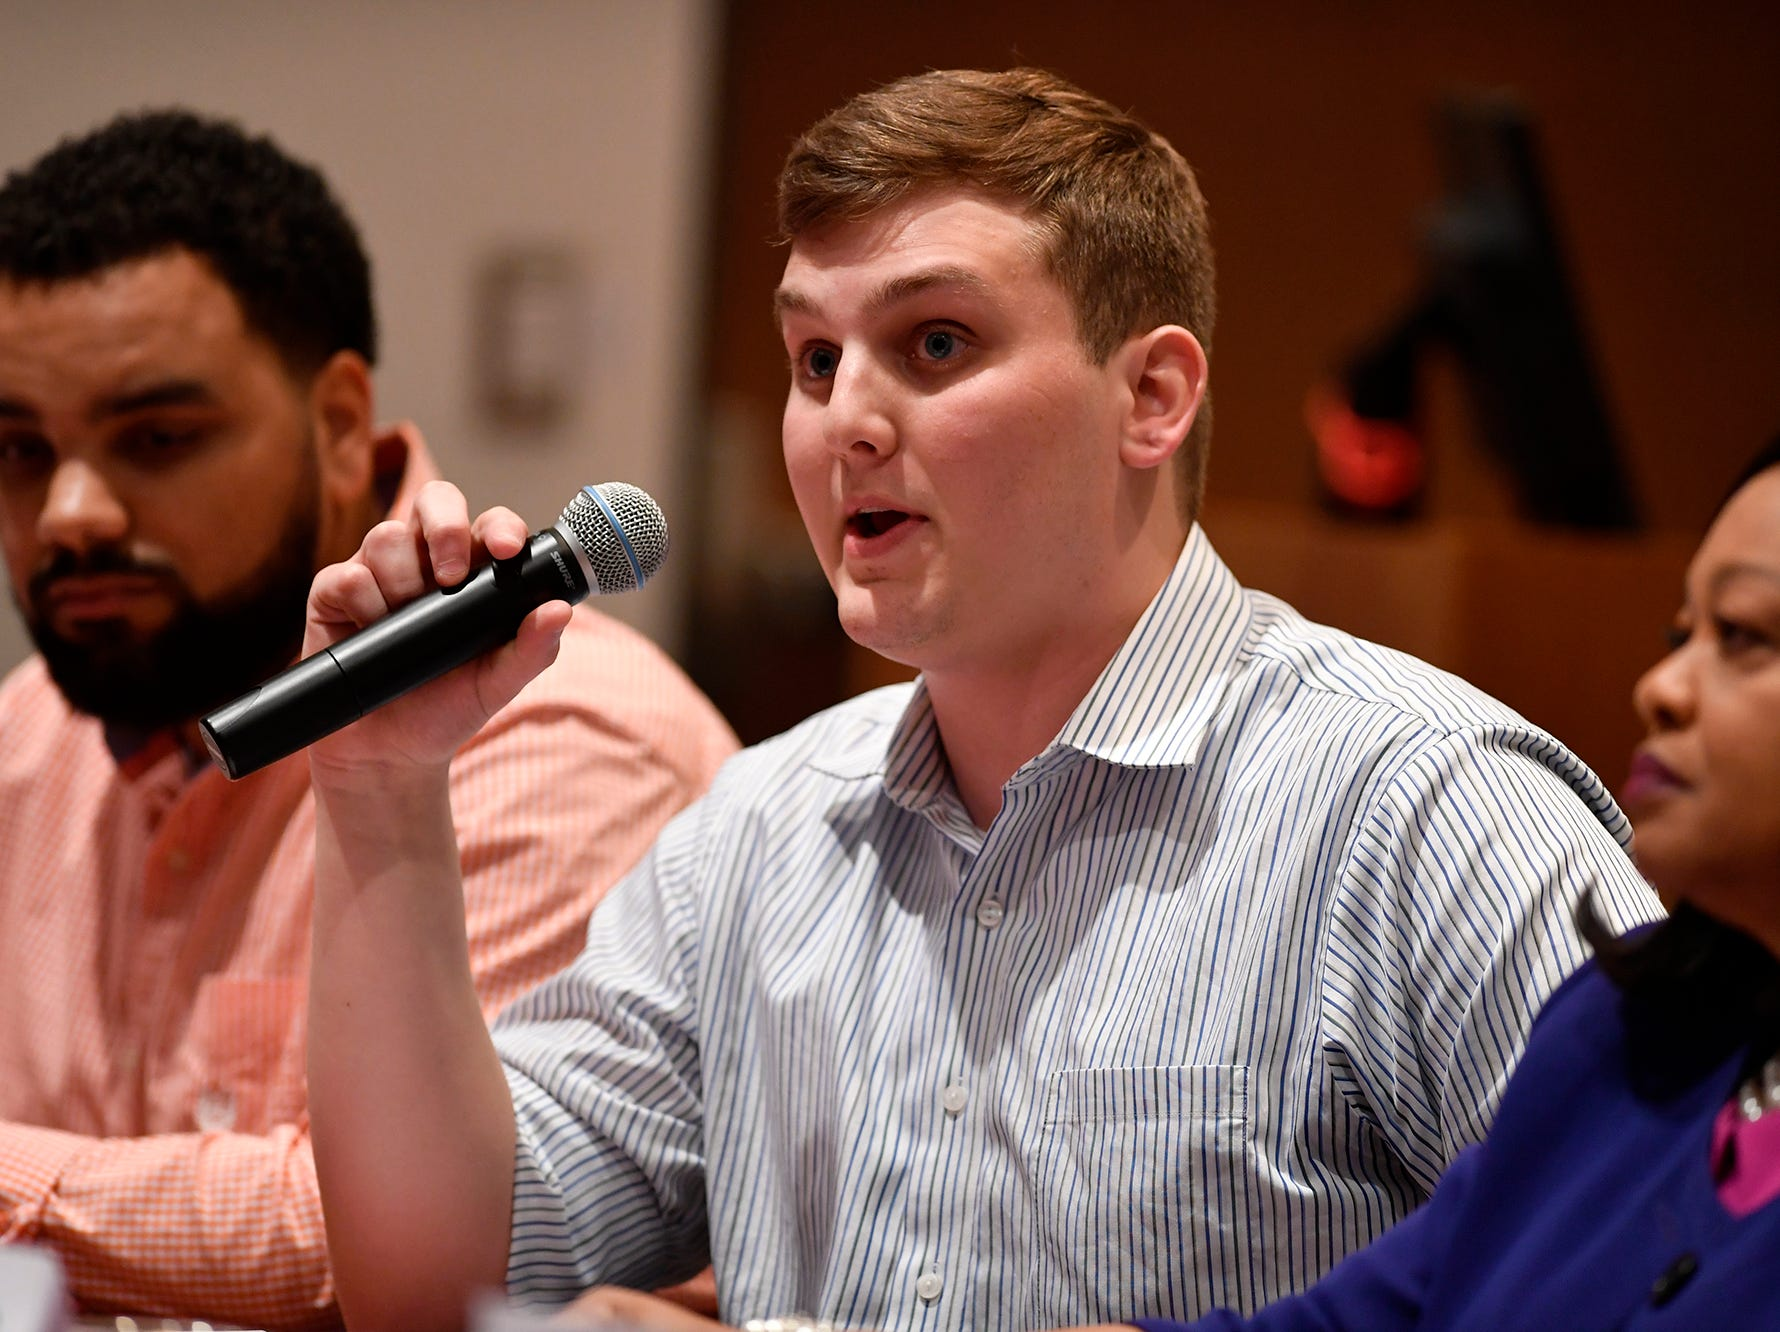 Matthew Anderson (D) candidate for Prothonotary, takes part in the York Stands Up bipartisan countywide candidates forum in the Weinstock Lecture Hall inside the Willman Business Center at York College, Monday, May 6, 2019.John A. Pavoncello photo